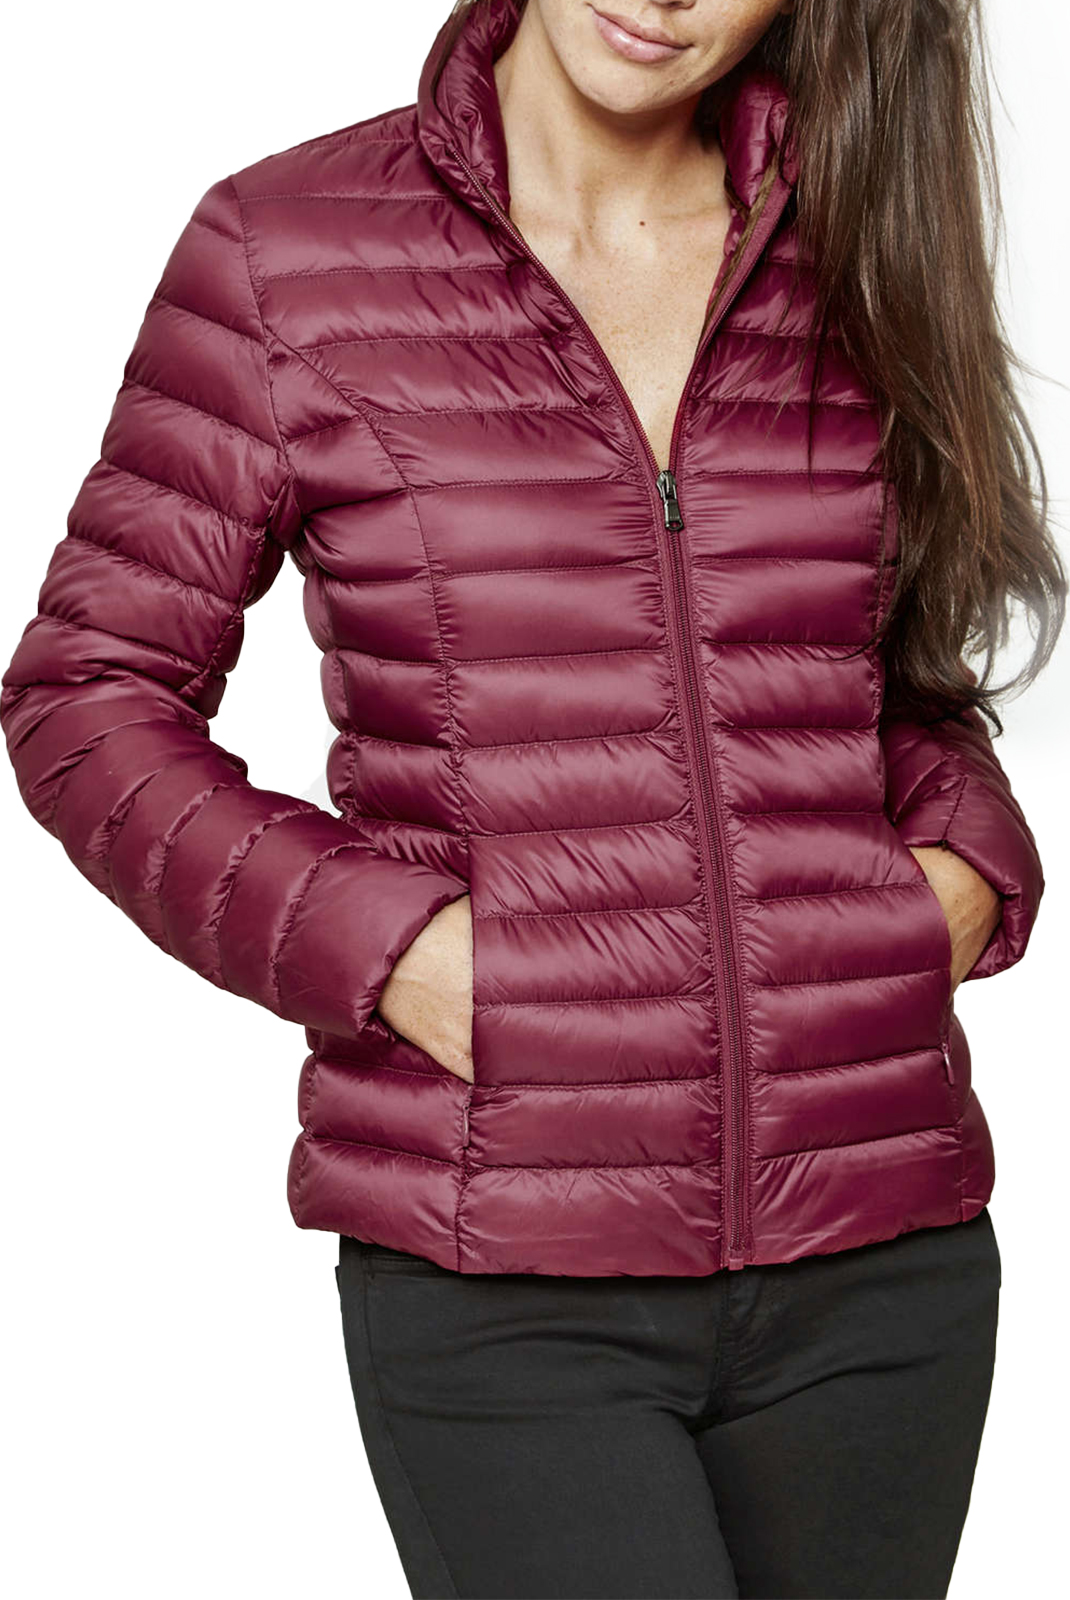 Blouson  Just over the top CHA 418 FRAMBOISE